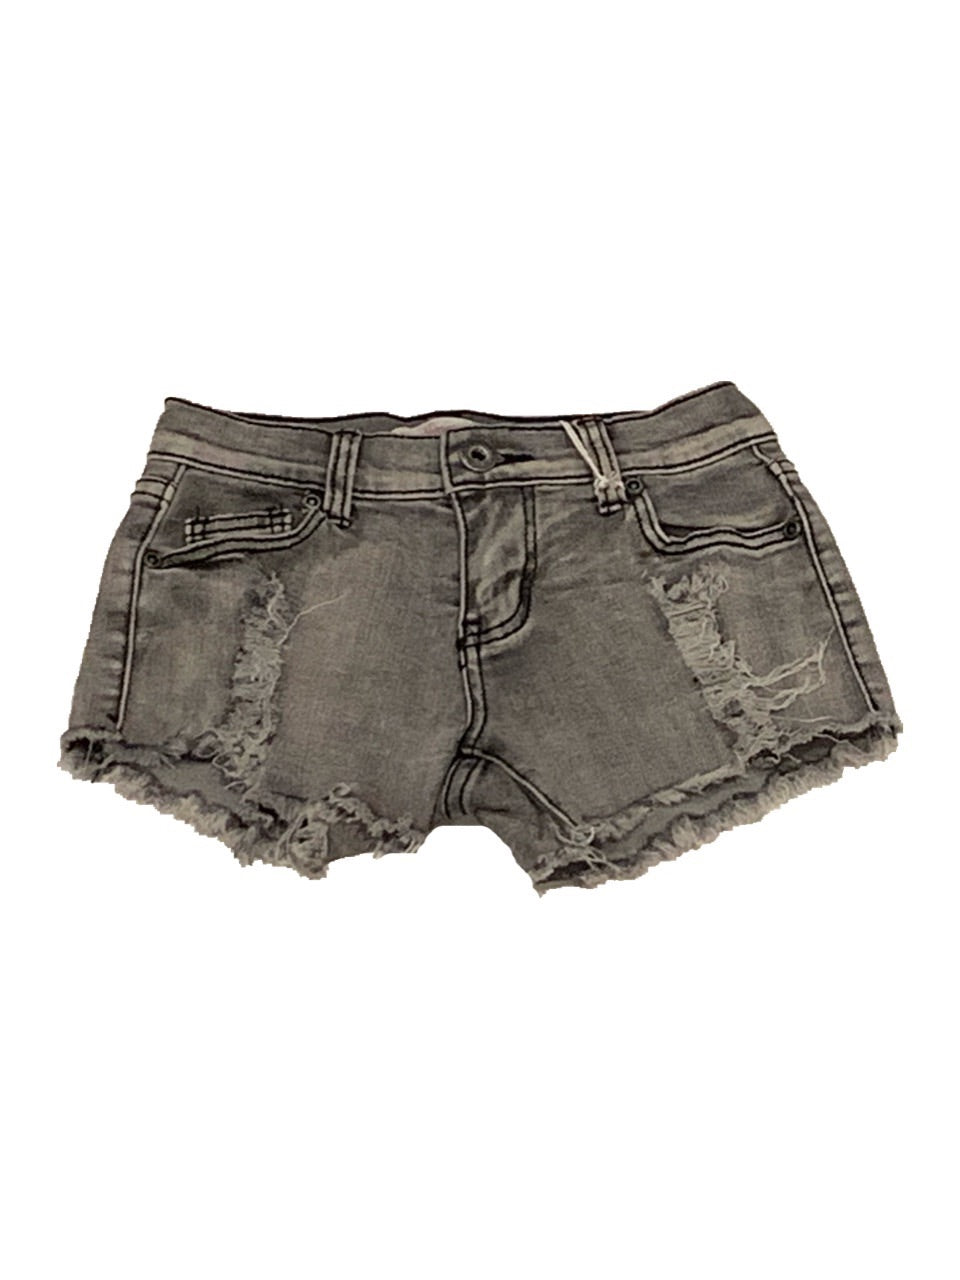 Vintage Havana Mermaid Distressed Denim Shorts